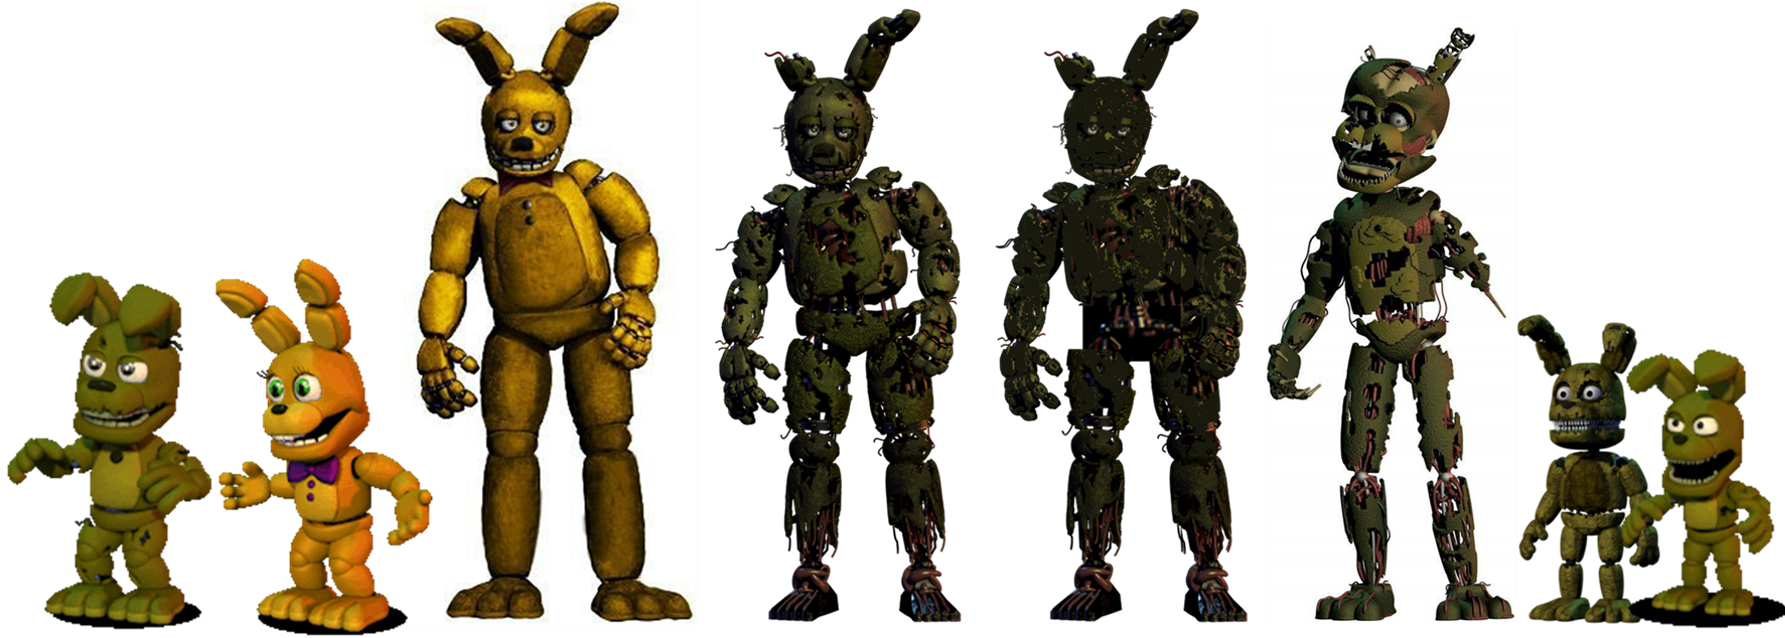 """Speculation"" Could the discs be responsible for Springtrap's sudden model change from FNaF 3 to 6?"